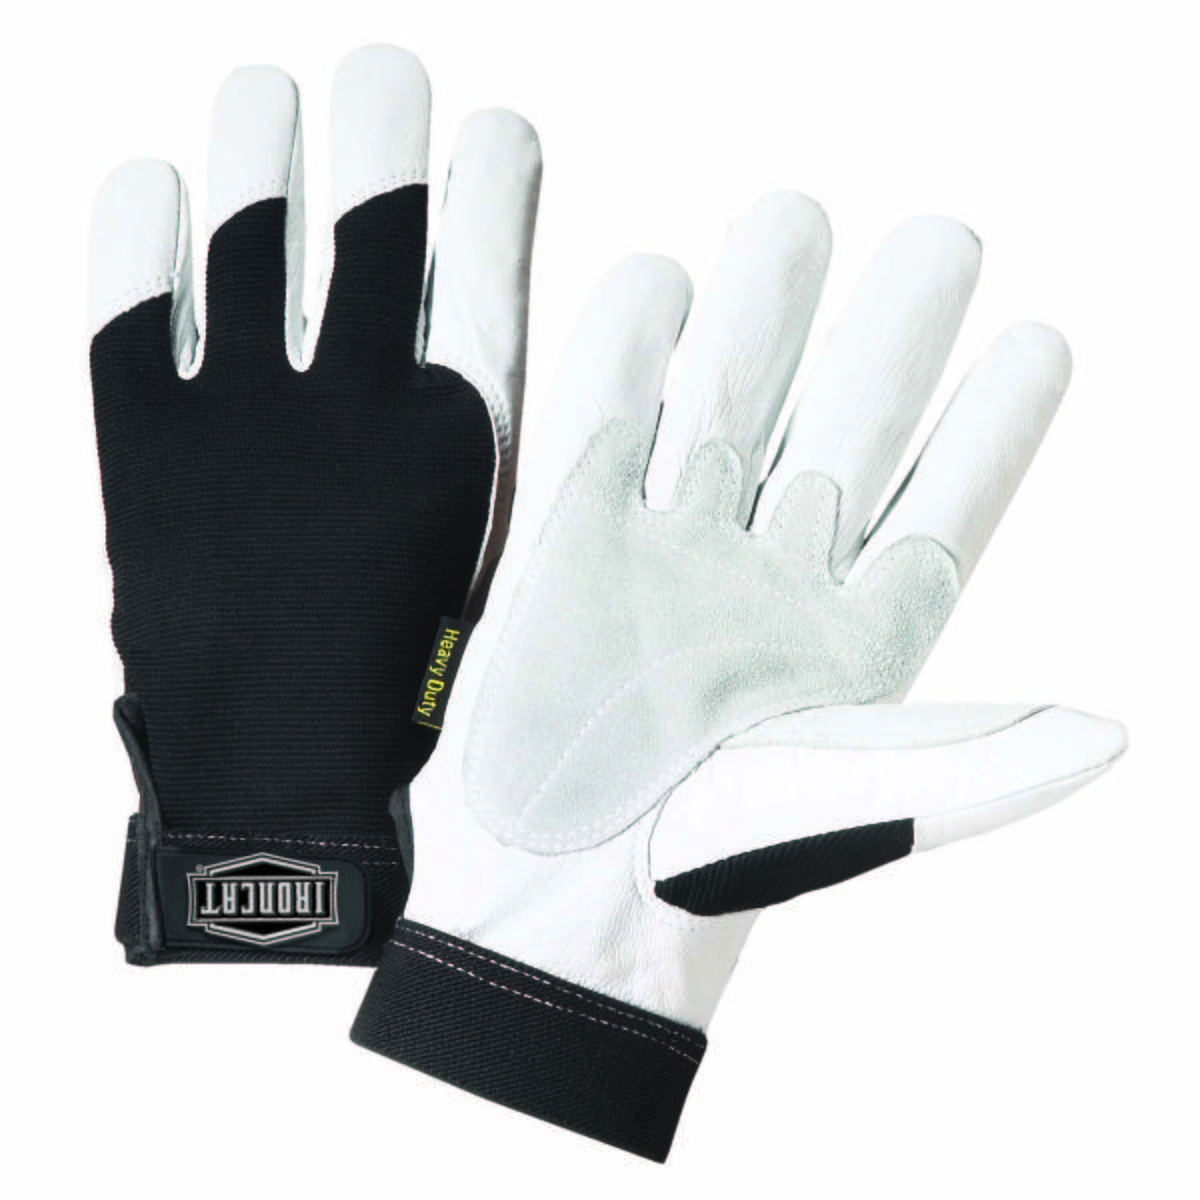 Grain goat with spandex  back and split reinforced palm and thumb.  Hook and loop elastic wrist with logo TPR closure Gloves